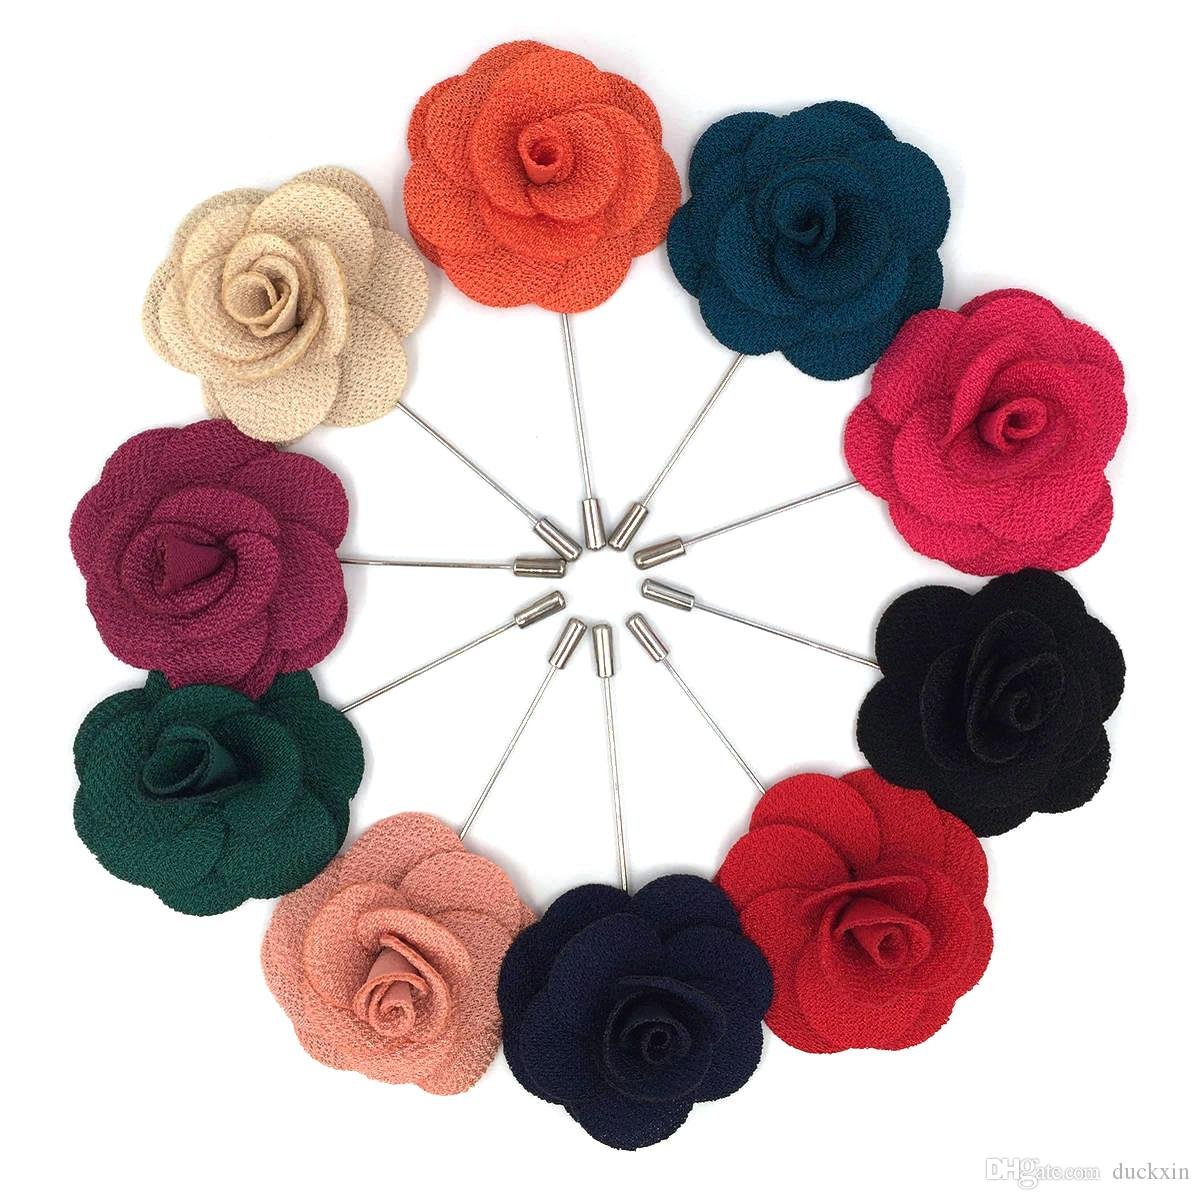 Boutonniere silk blend fashion mens lapel flowers handmade stick pin boutonniere silk blend fashion mens lapel flowers handmade stick pin wedding lapel flowers online with 47piece on duckxins store dhgate mightylinksfo